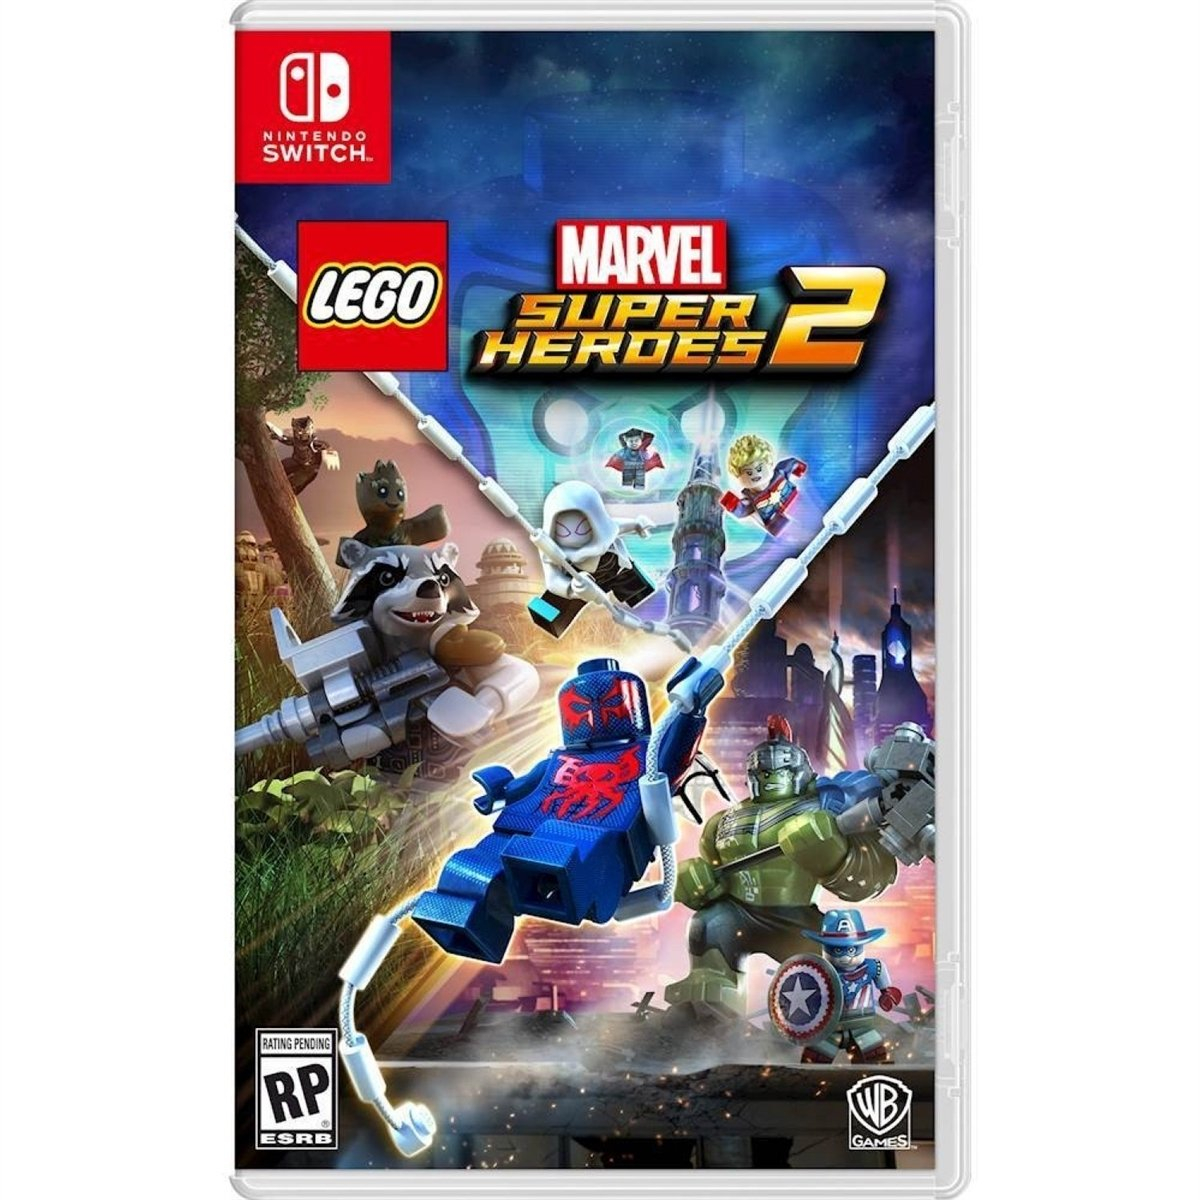 lego marvel super heroes 2 switch incolor D61 0318 460